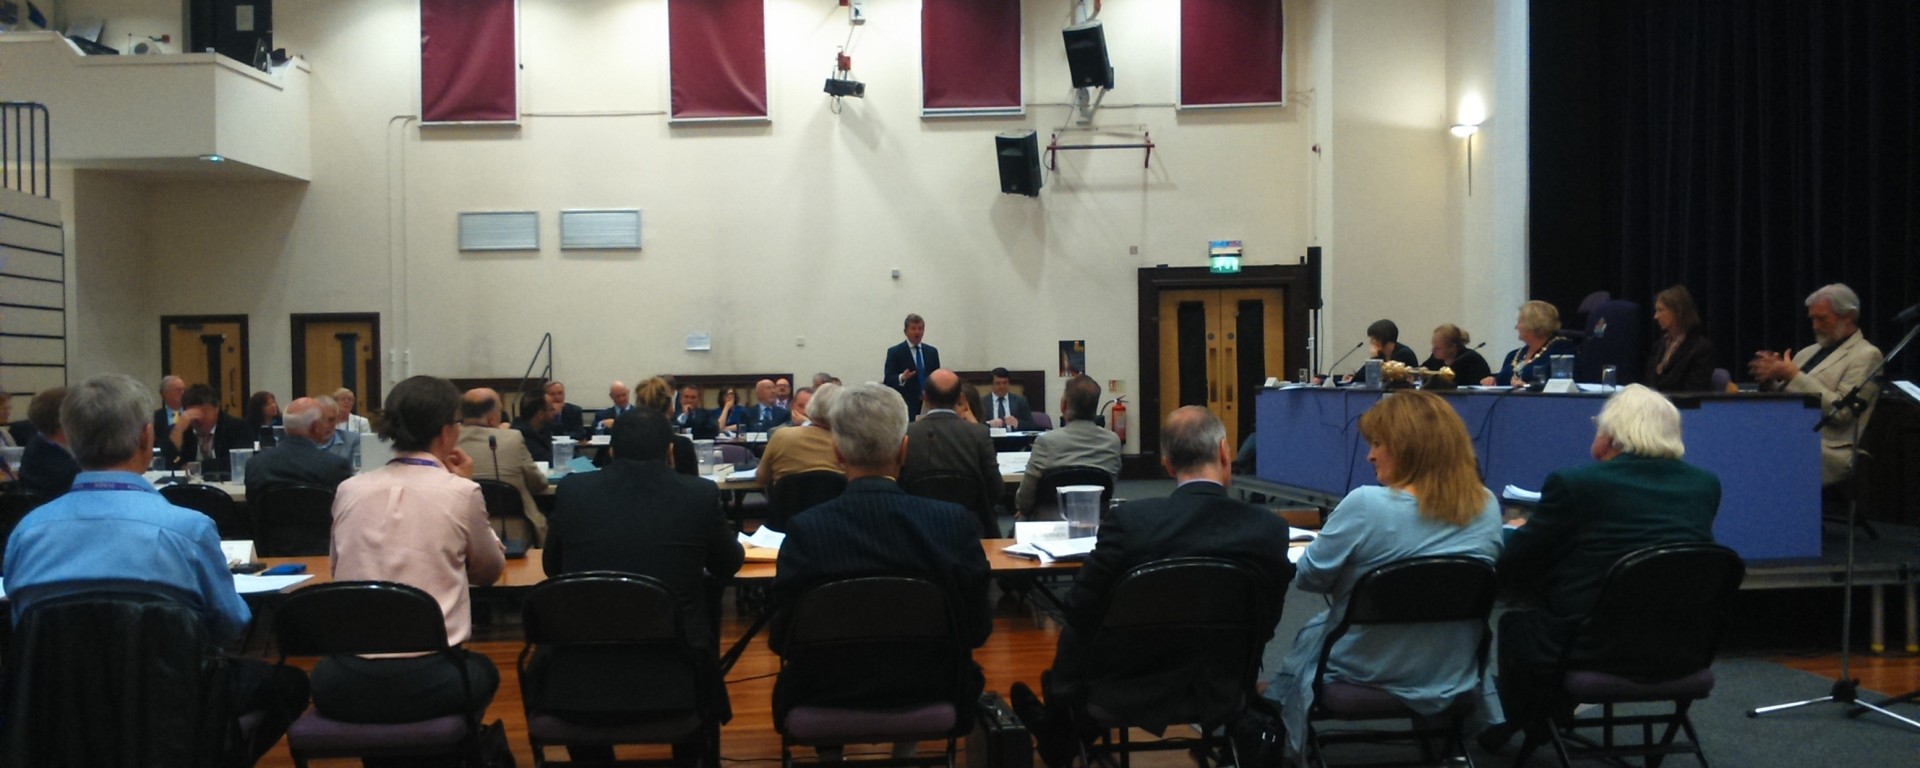 cllr simon dudley addresses rbwm 280715